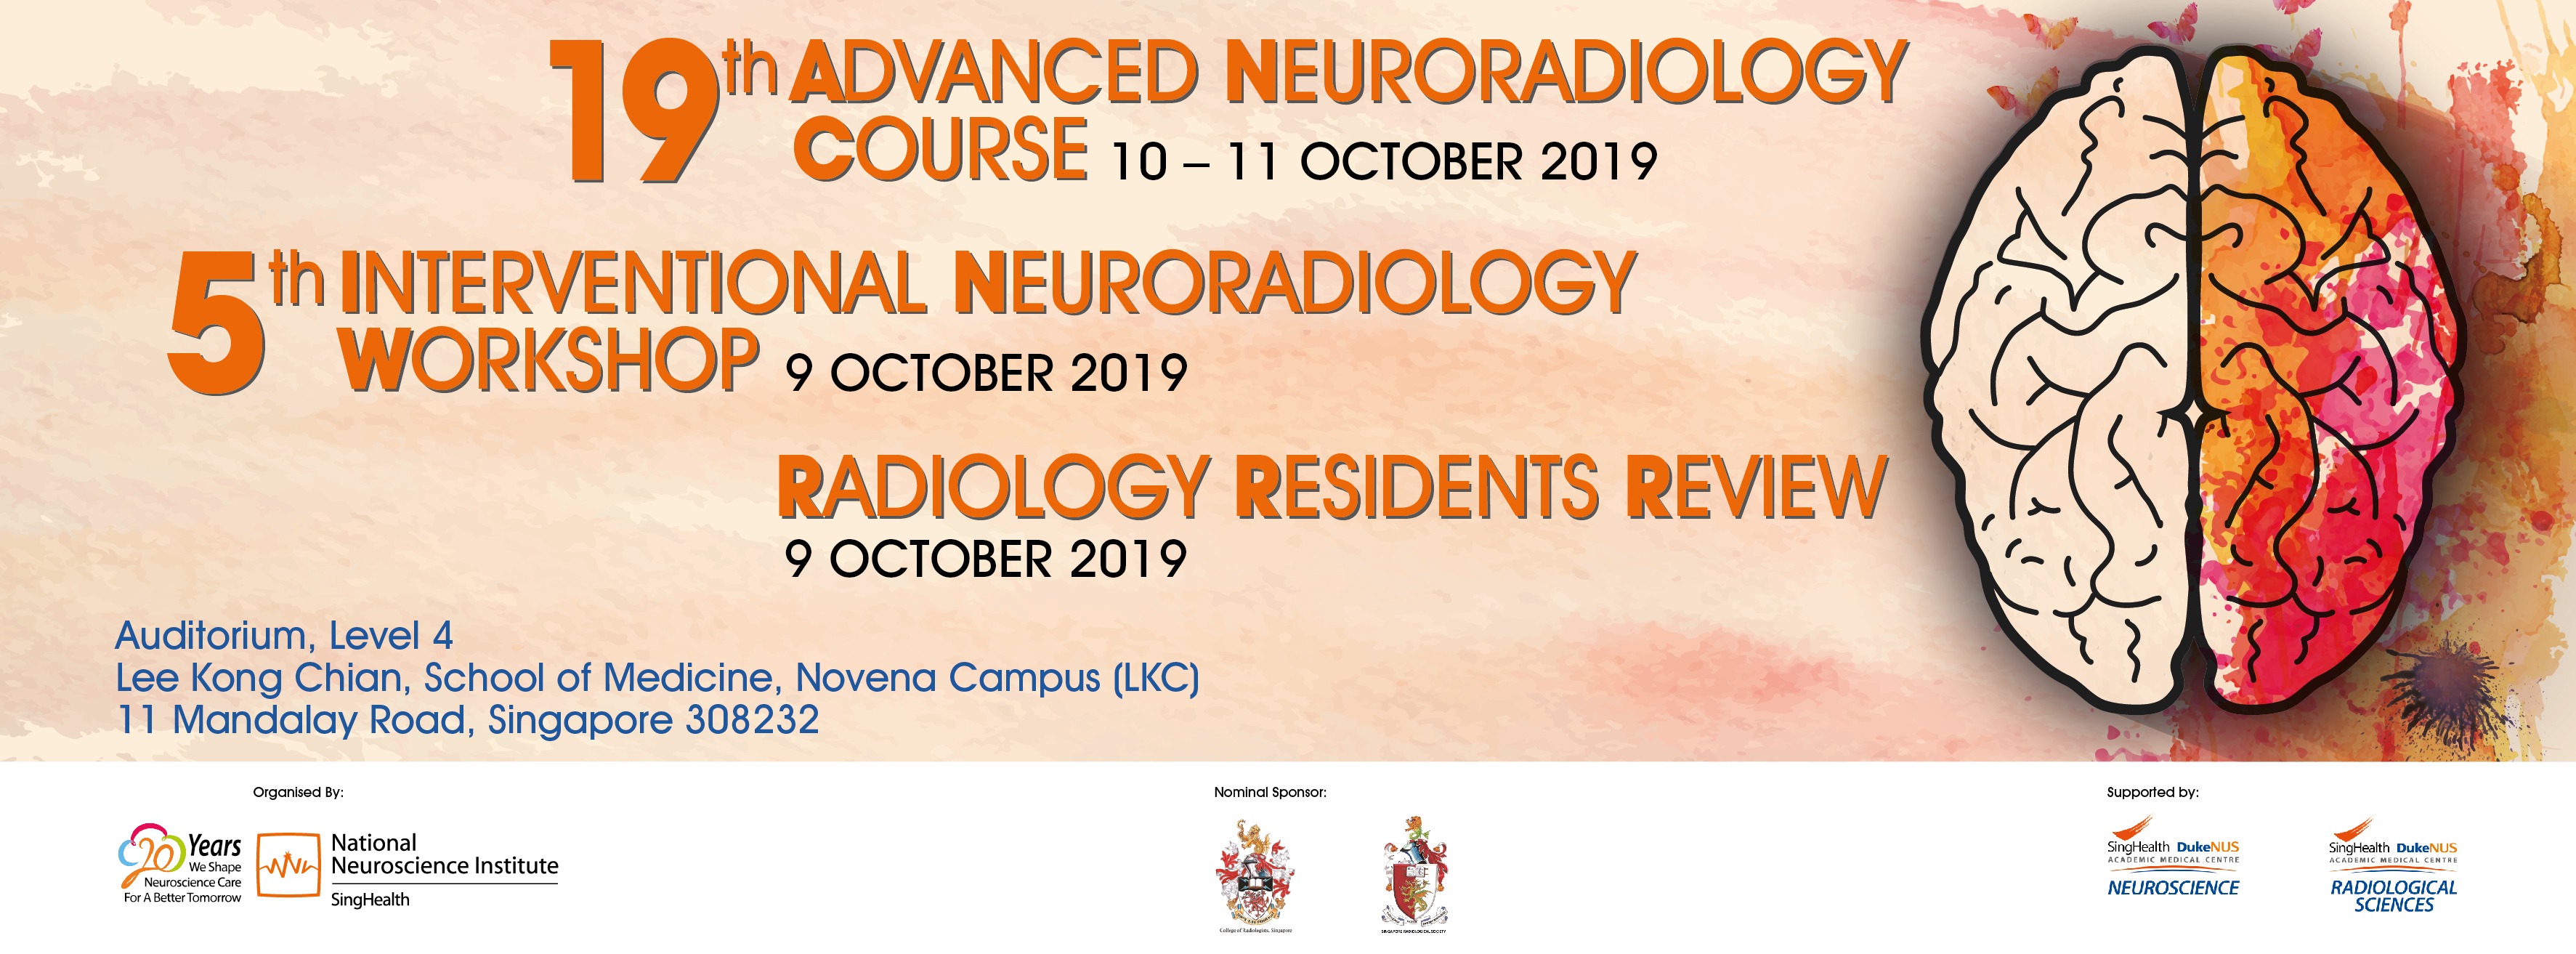 19th Advanced Neuroradiology Course and 5th Interventional Neuroradiology Workshop Banner Image